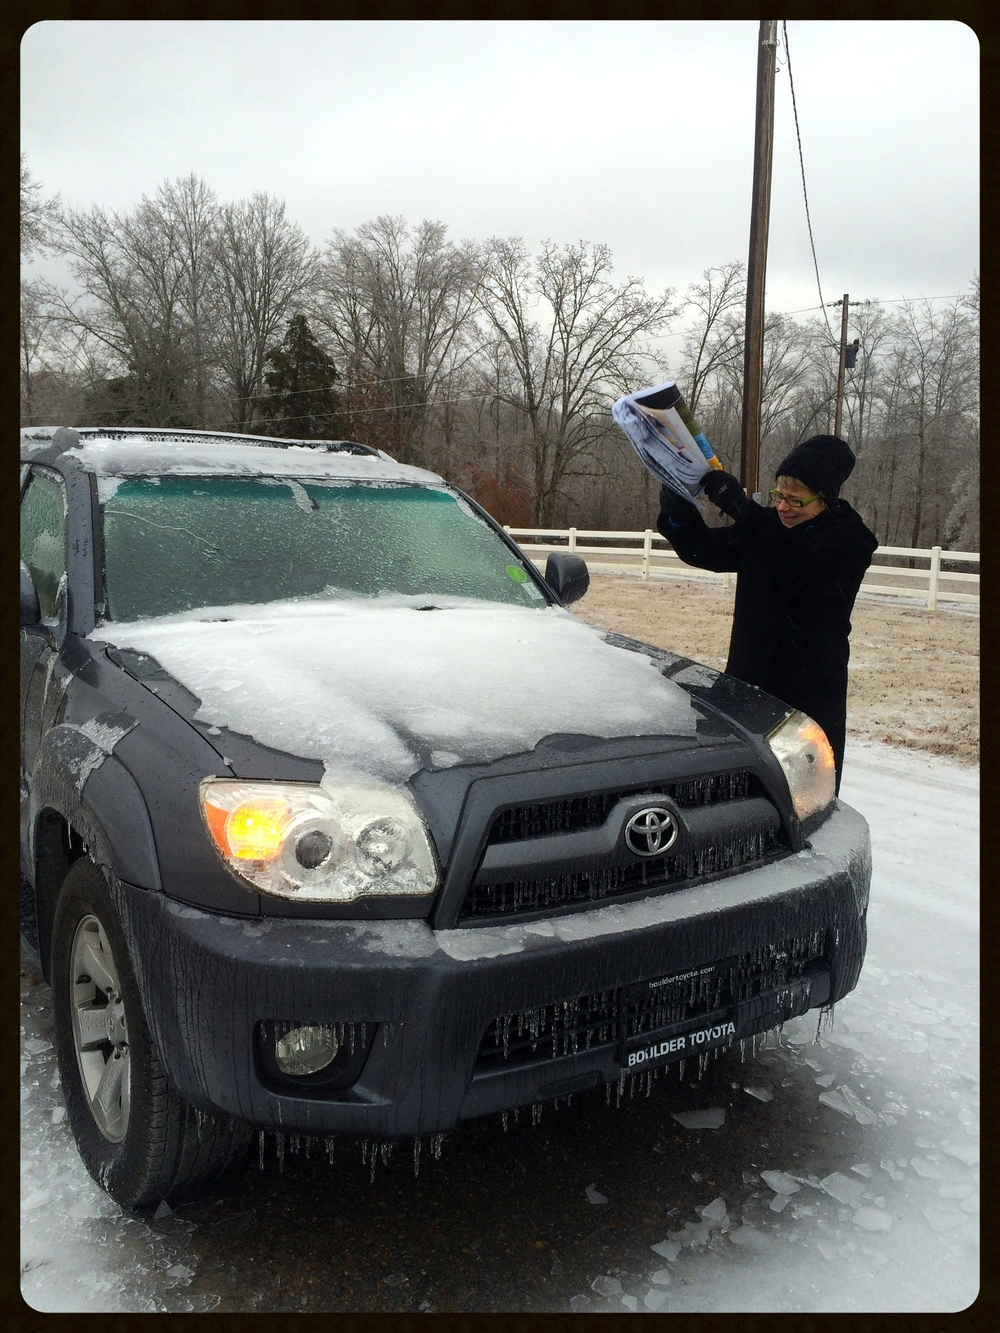 My mom using a road atlas as a de-icer